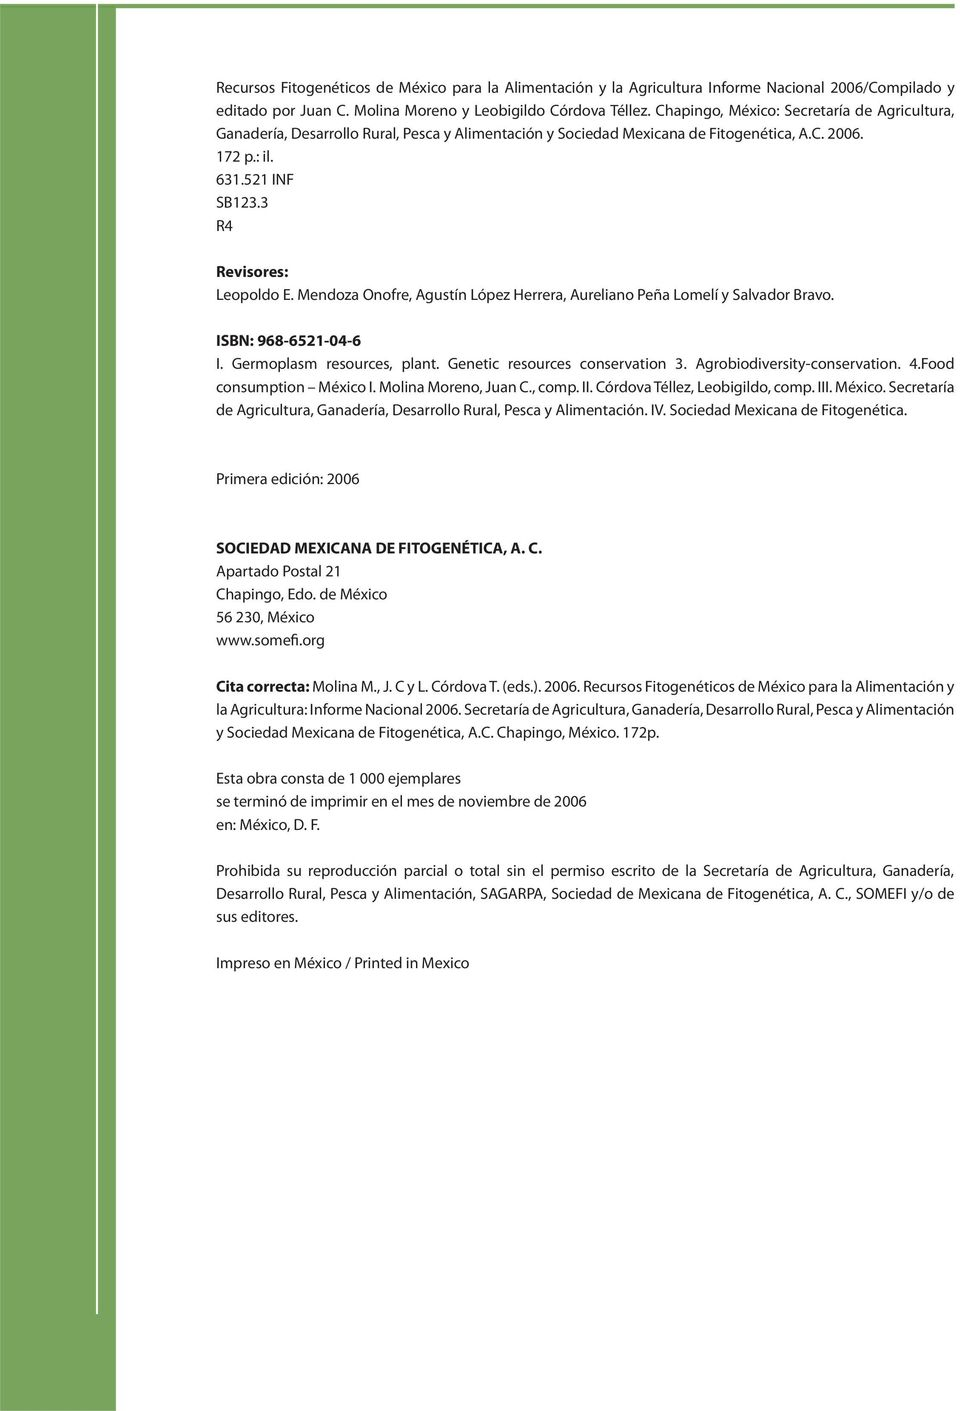 Mendoza Onofre, Agustín López Herrera, Aureliano Peña Lomelí y Salvador Bravo. ISBN: 968-6521-04-6 I. Germoplasm resources, plant. Genetic resources conservation 3. Agrobiodiversity-conservation. 4.